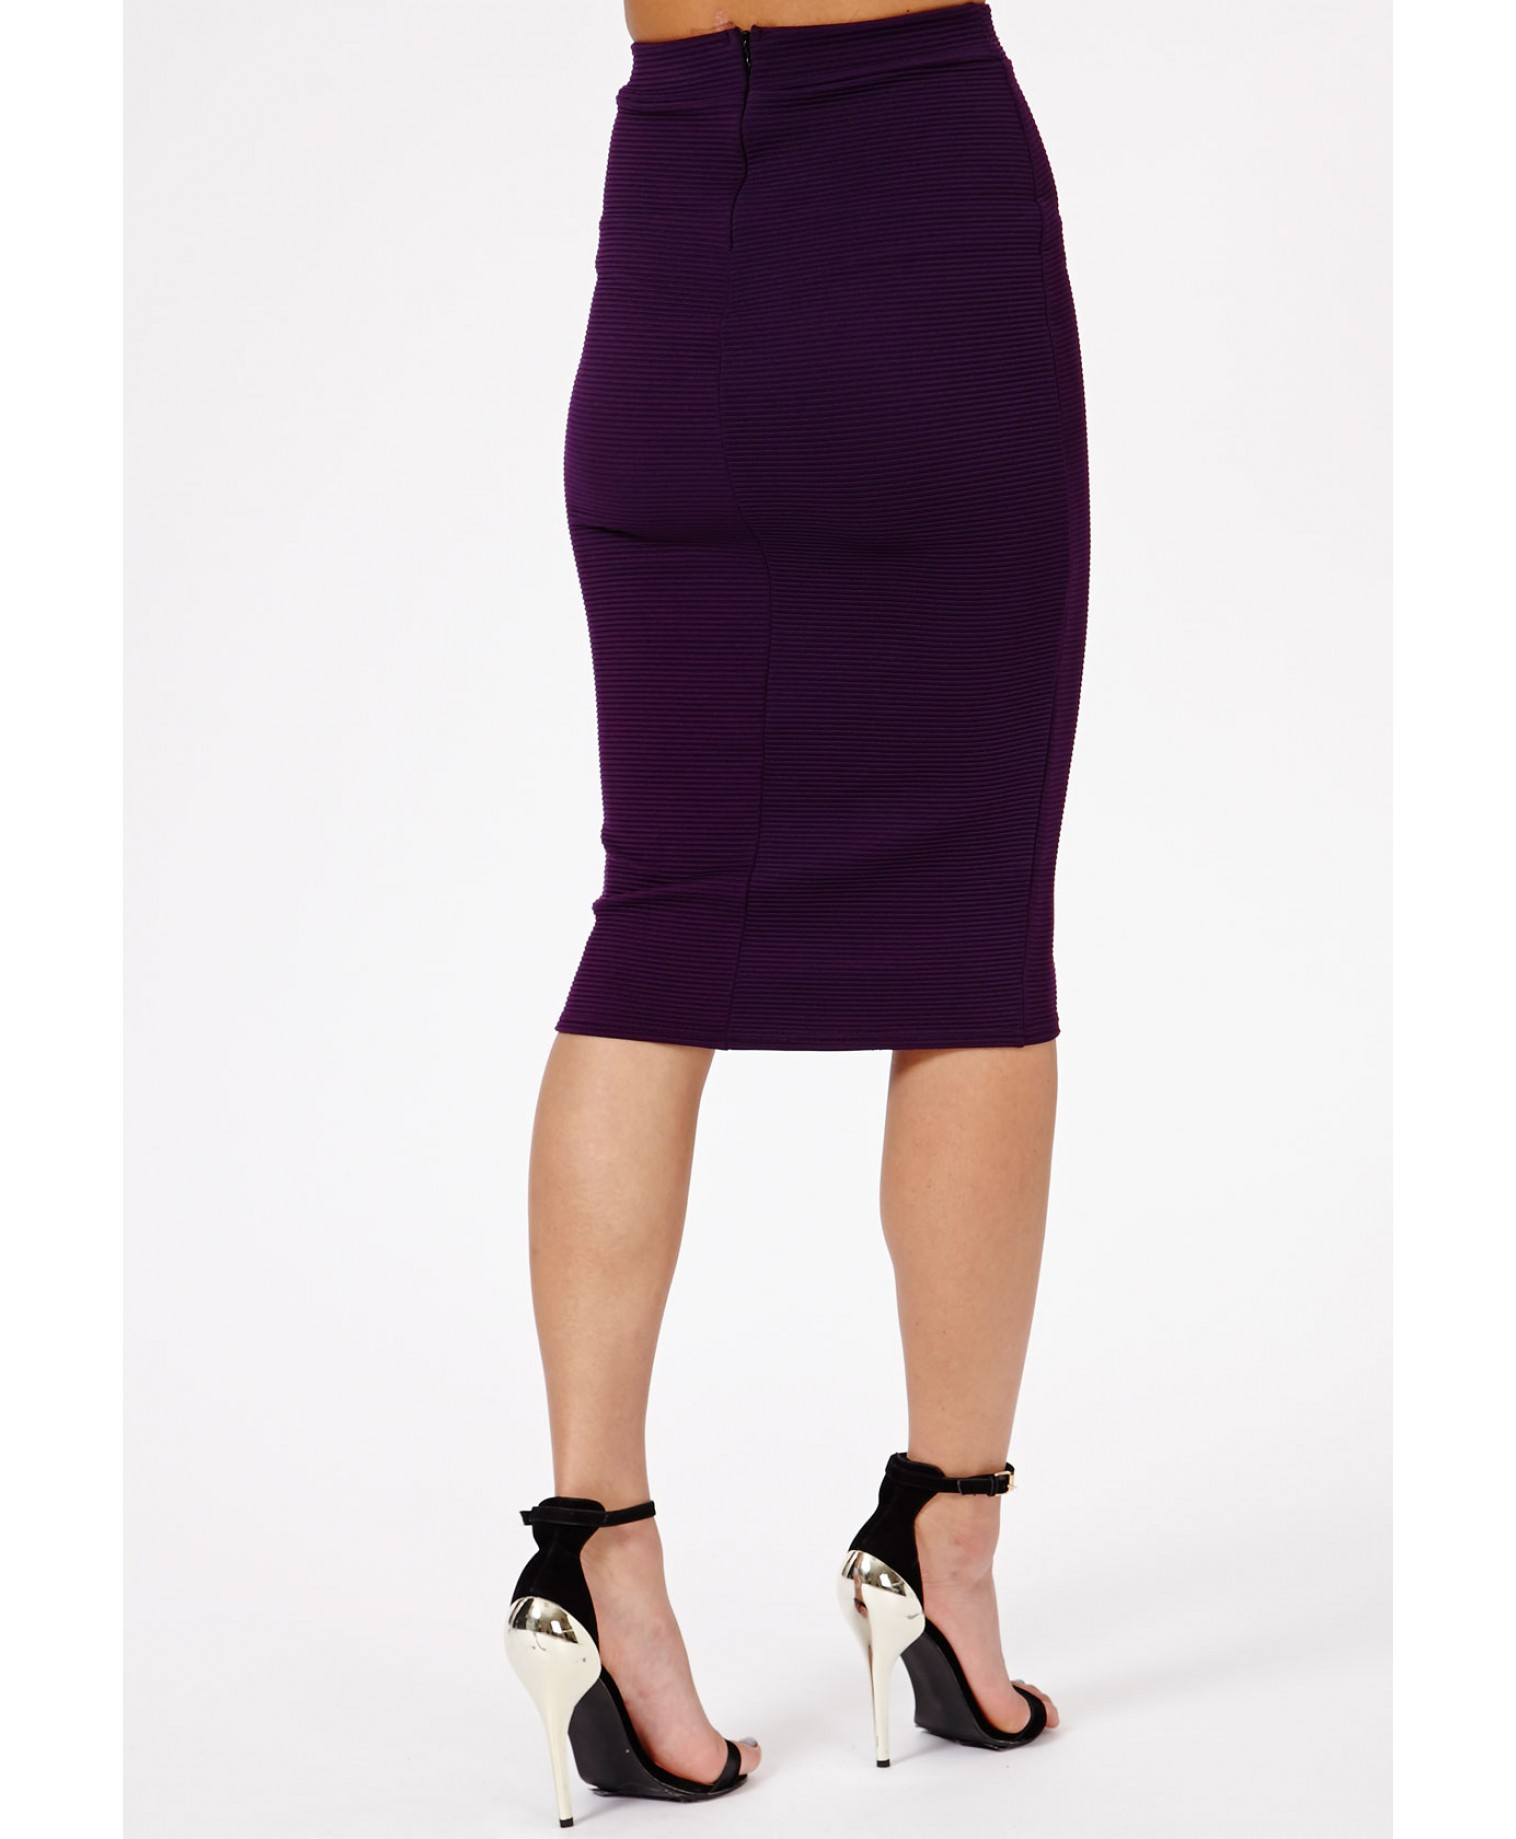 Missguided Jeania Ribbed Bodycon Midi Skirt in Plum in Purple | Lyst